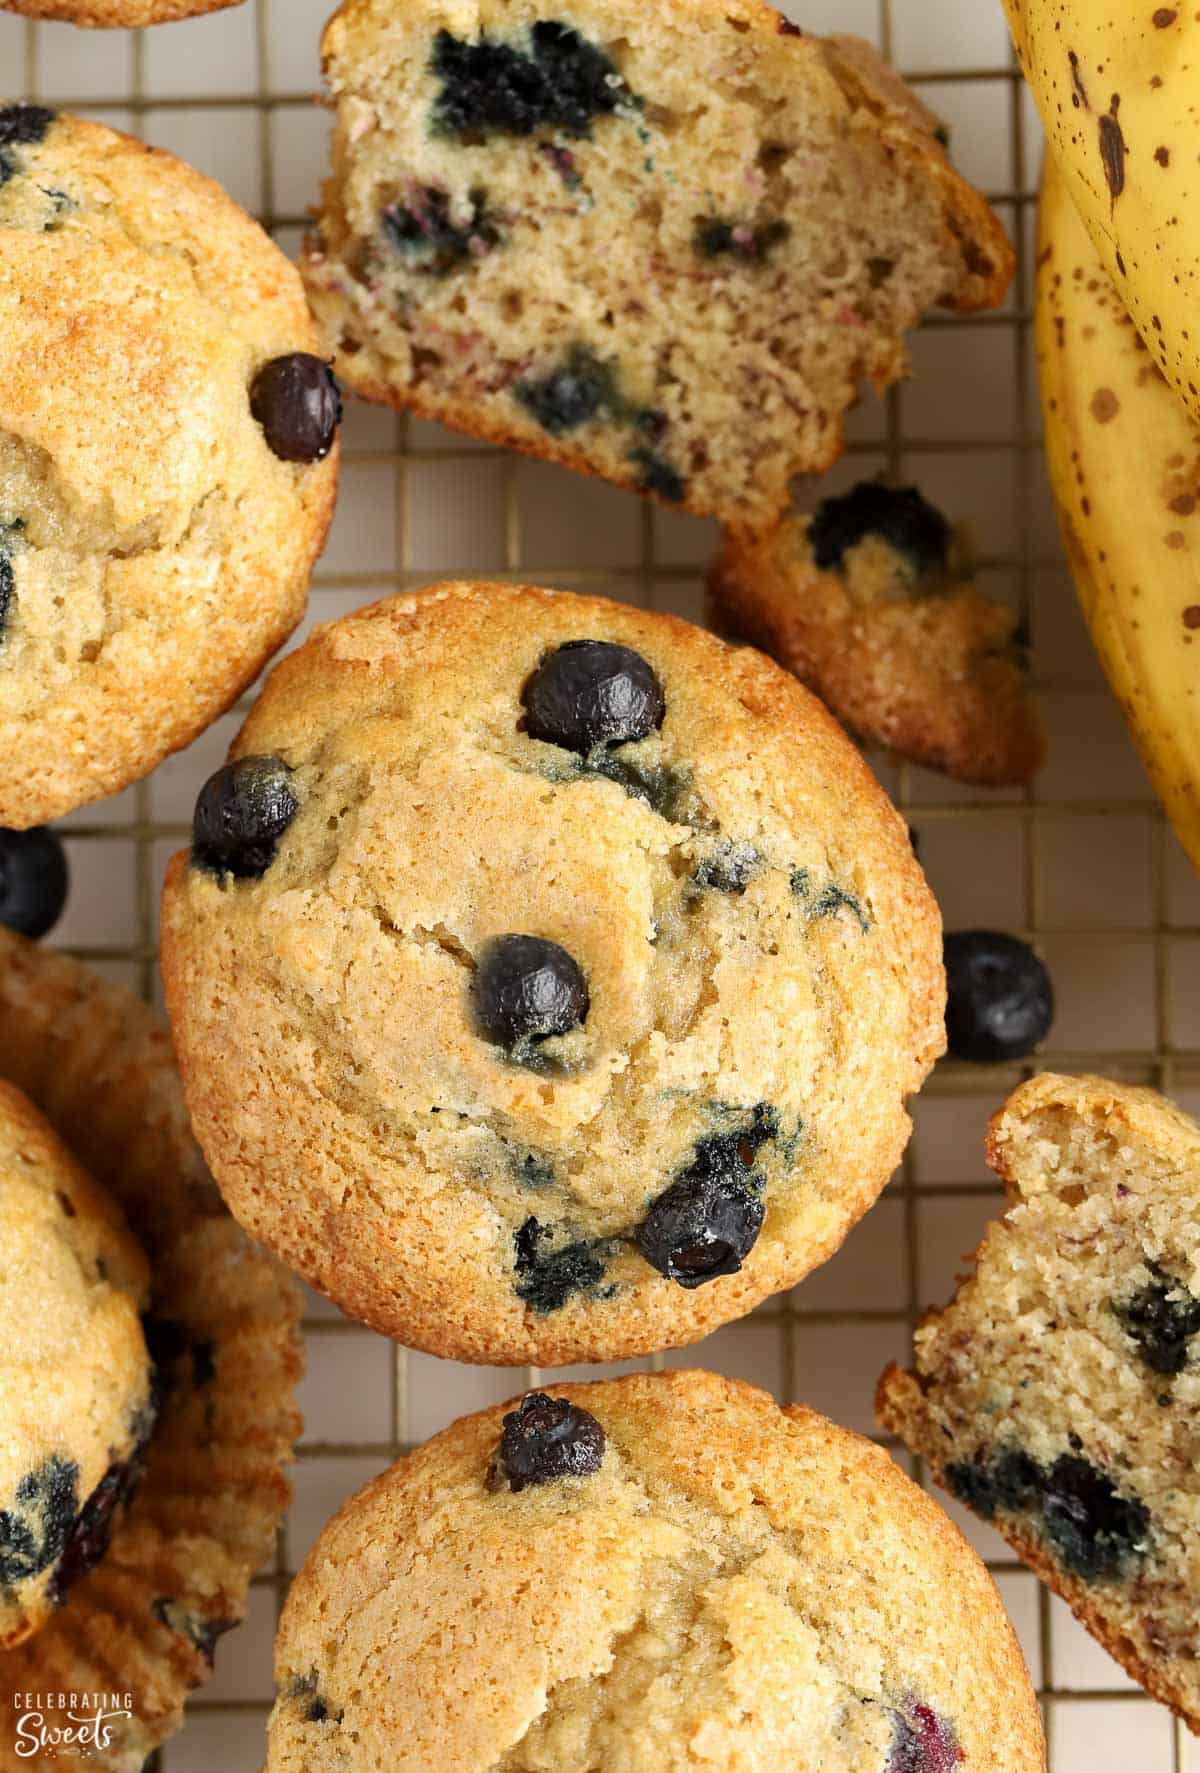 Overhead shot of blueberry banana muffins on a wire rack.